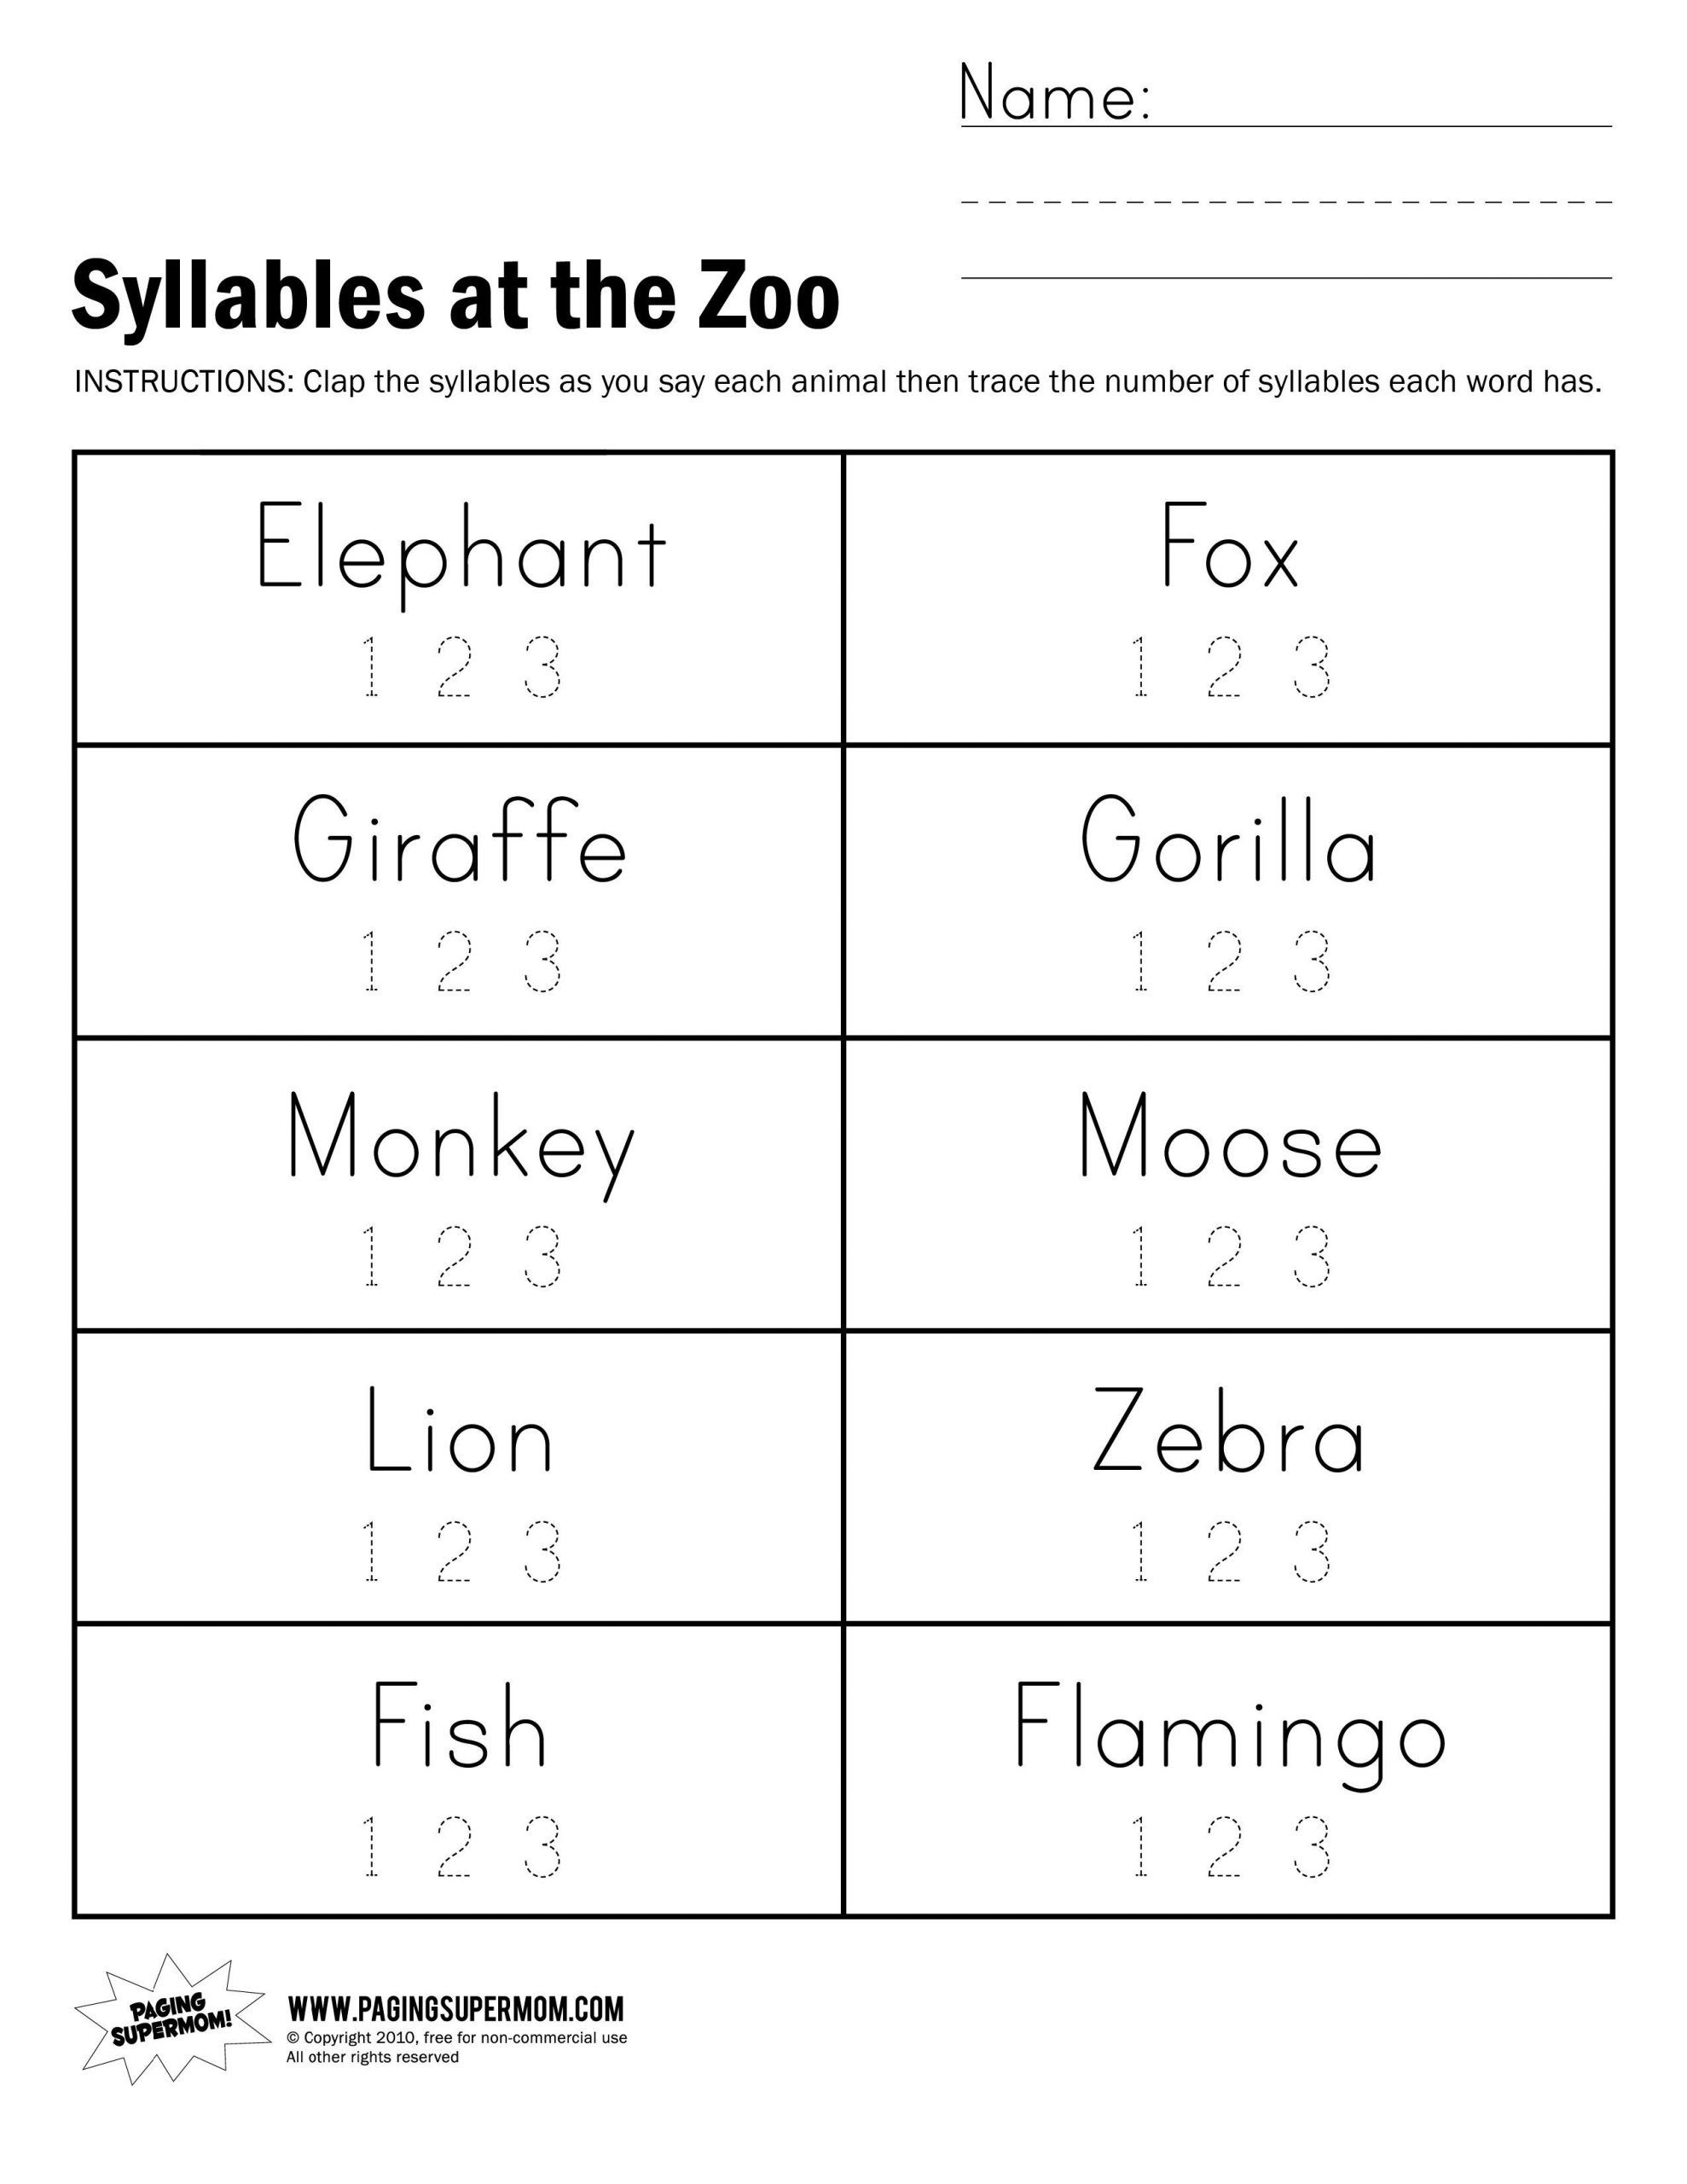 Syllable Worksheet For Kindergarten Counting Syllables